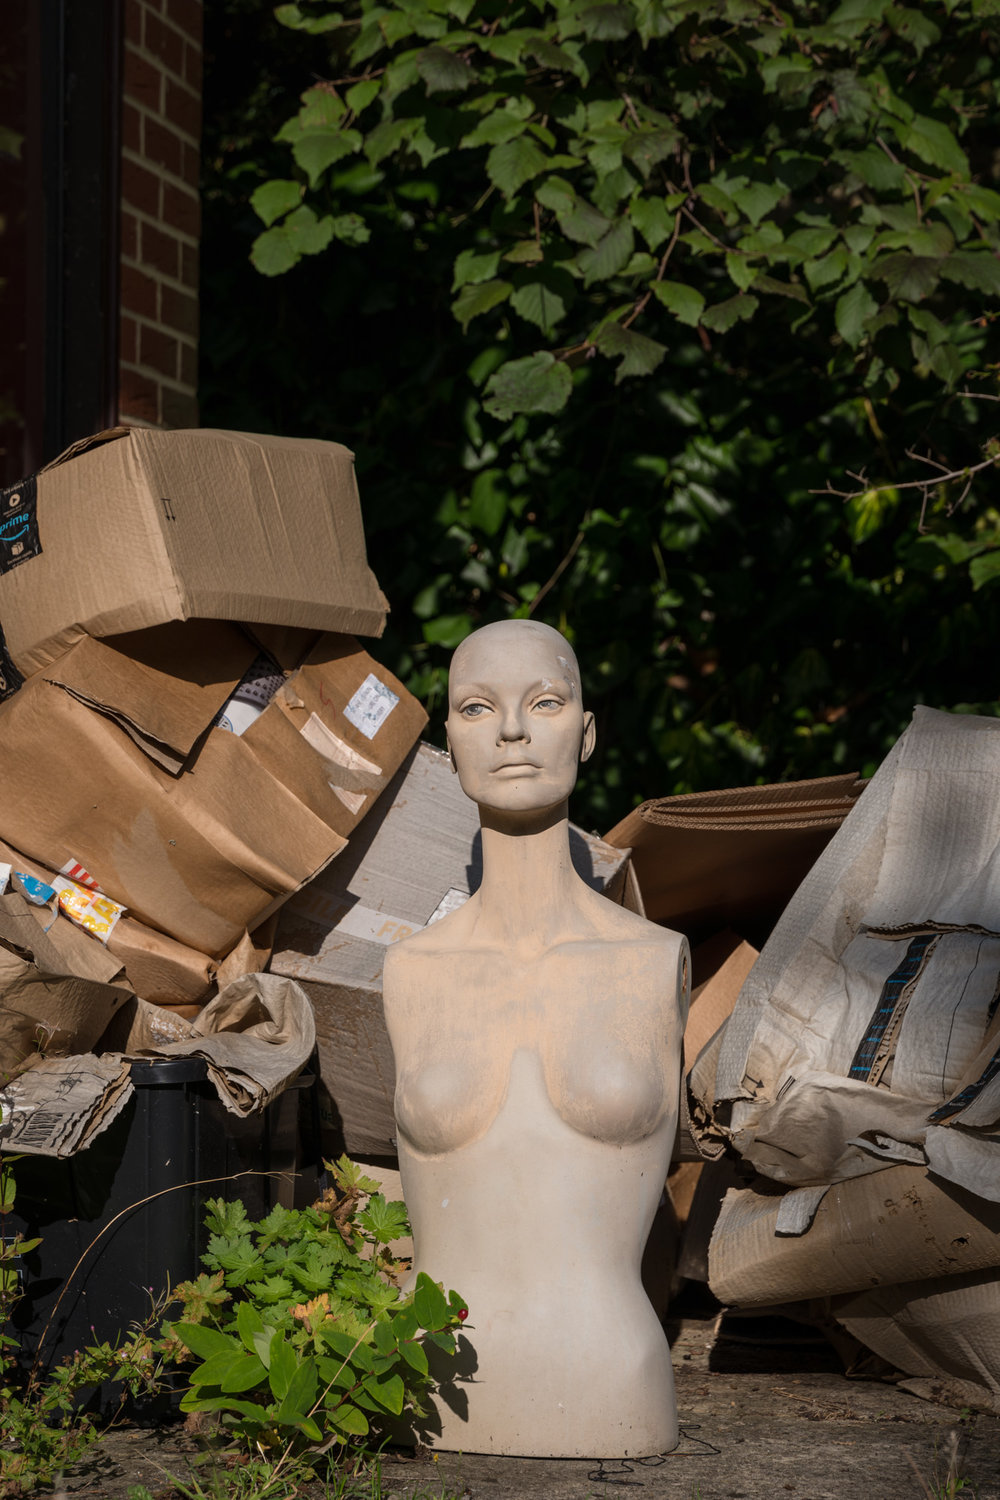 Mannequin with Boxes in a Yard